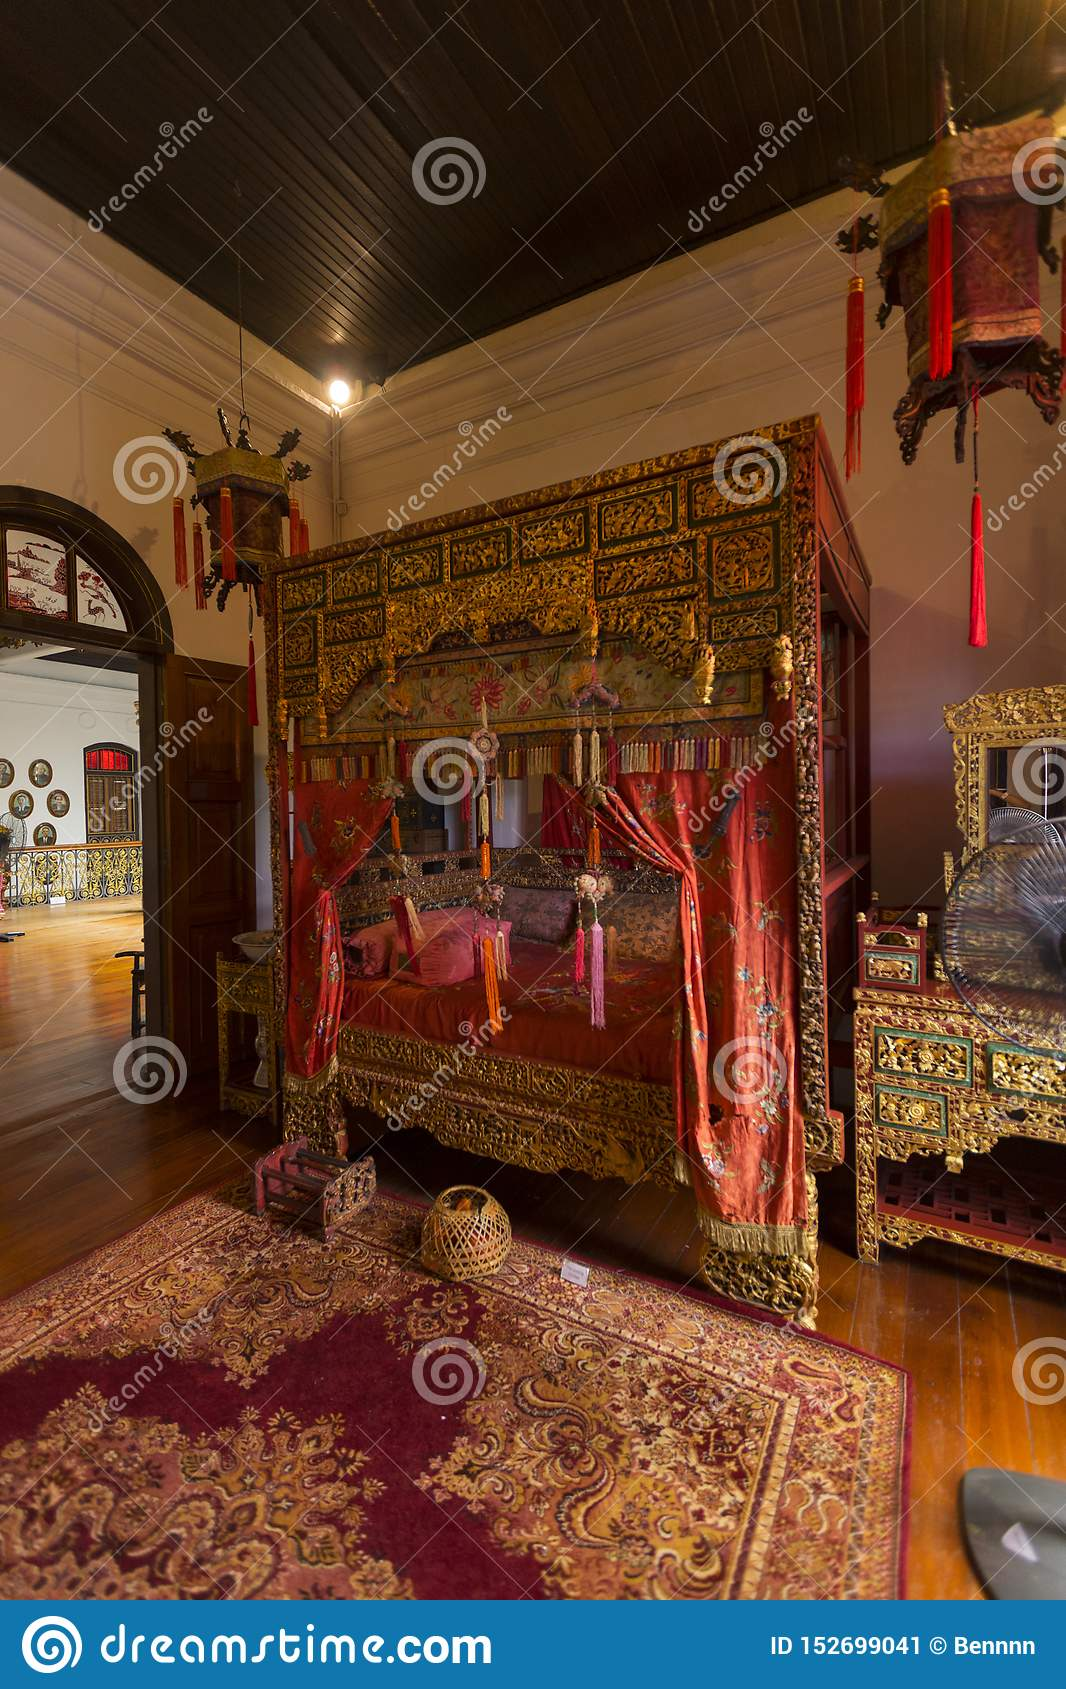 299 Traditional Chinese Bedroom Photos Free Royalty Free Stock Photos From Dreamstime